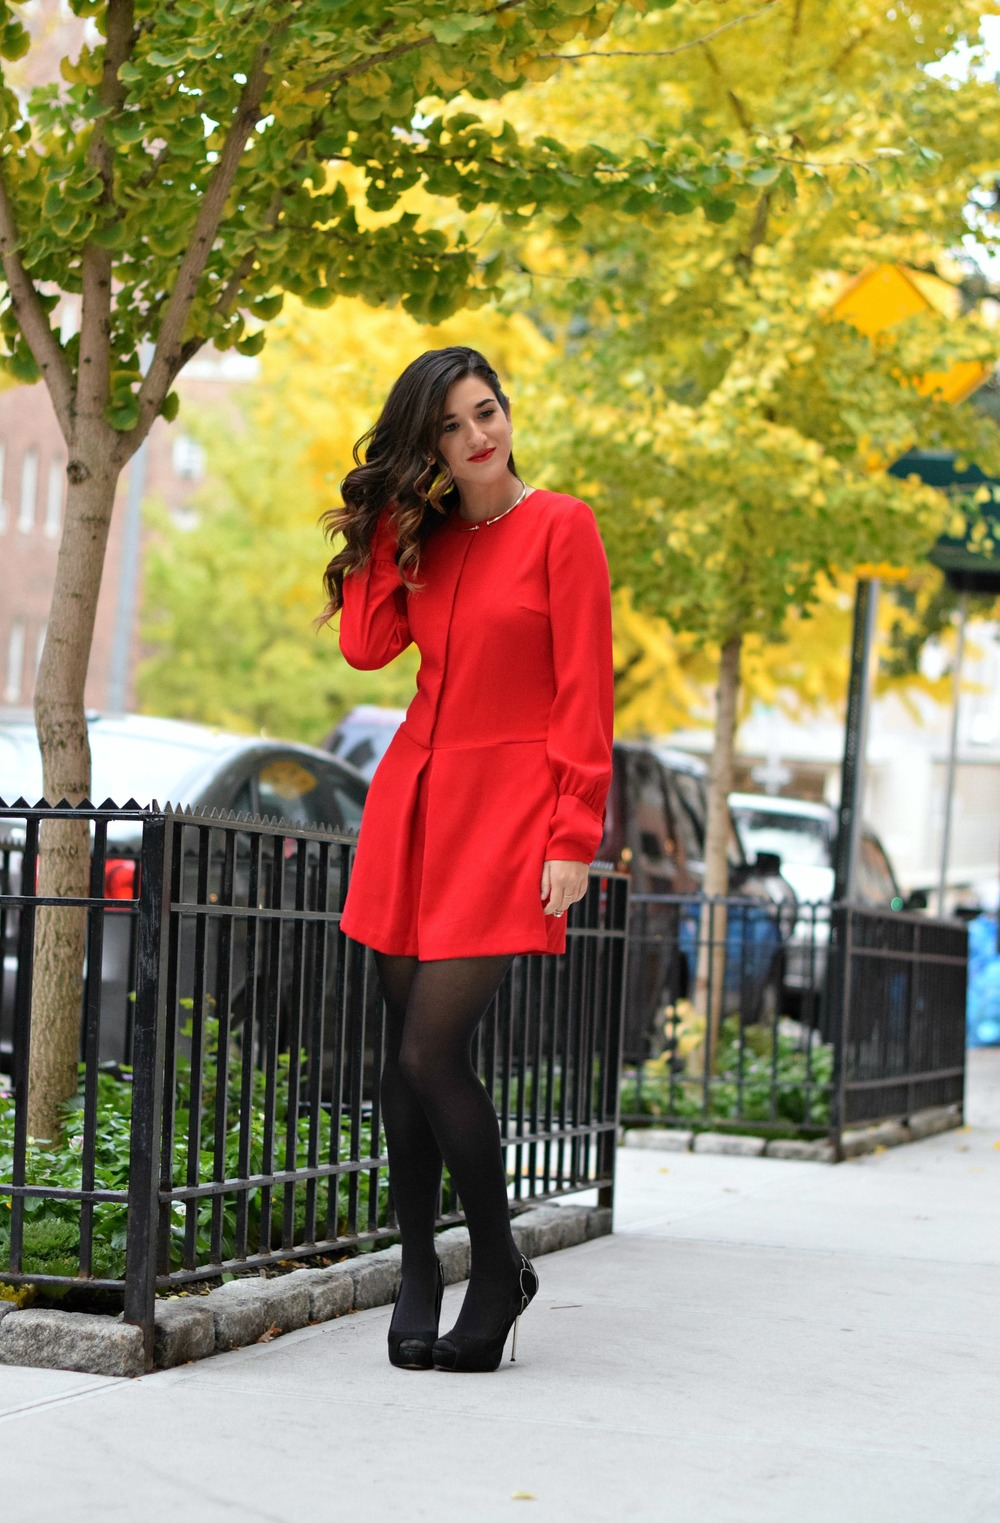 Red Romper Black Tights Louboutins & Love Fashion Blog Esther Santer NYC Street Style Blogger Winter Fall Look Shoes Heels Zara Gold Collar Necklace Braid Hair Inspo Outfit OOTD Photoshoot NYC Girl Women Stiletto Model Wear Shop Clothing Accessories.jpg